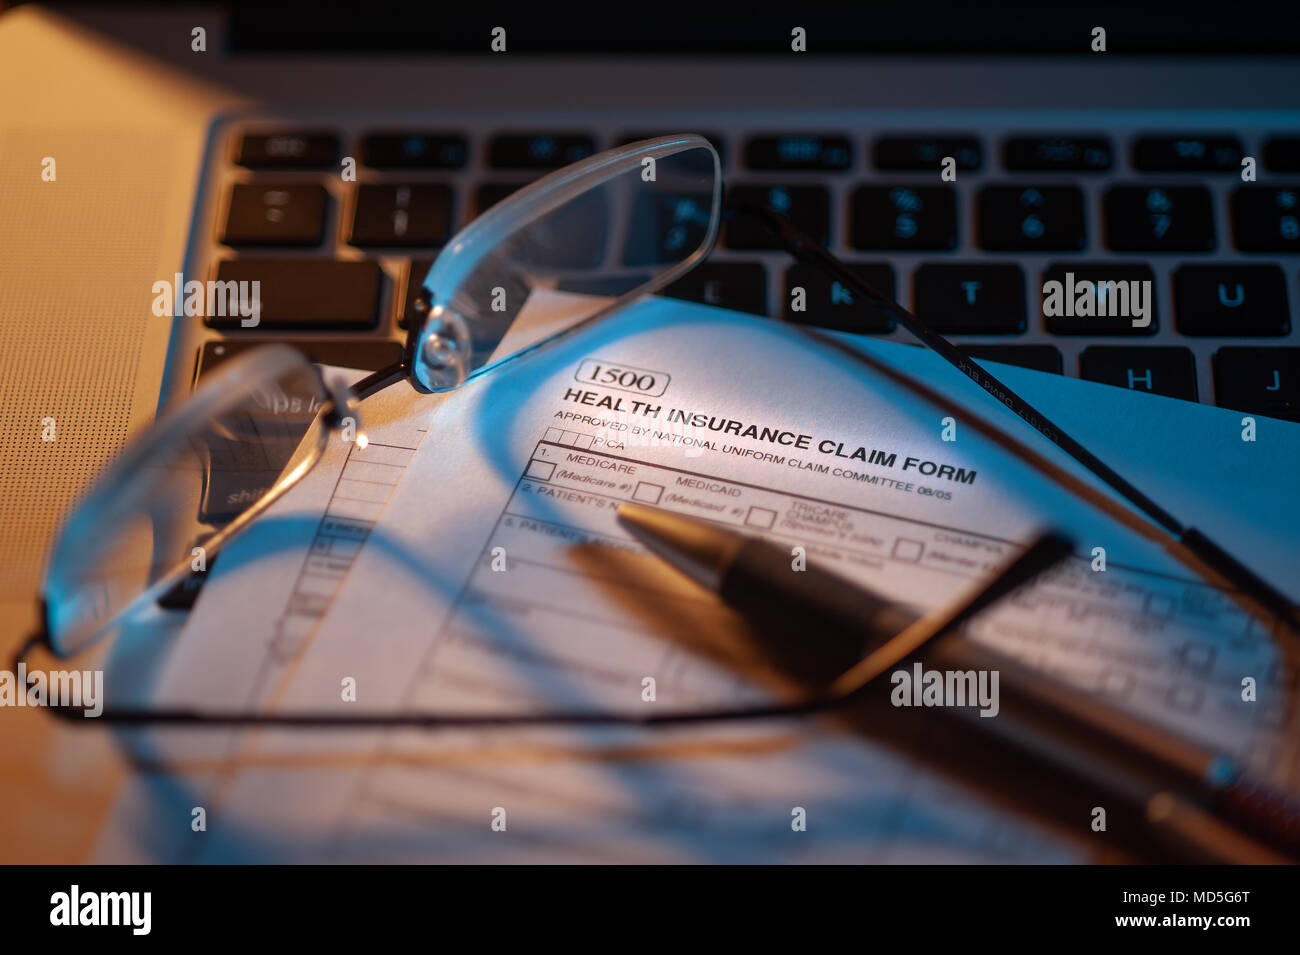 Filling out health insurance health form - Stock Image